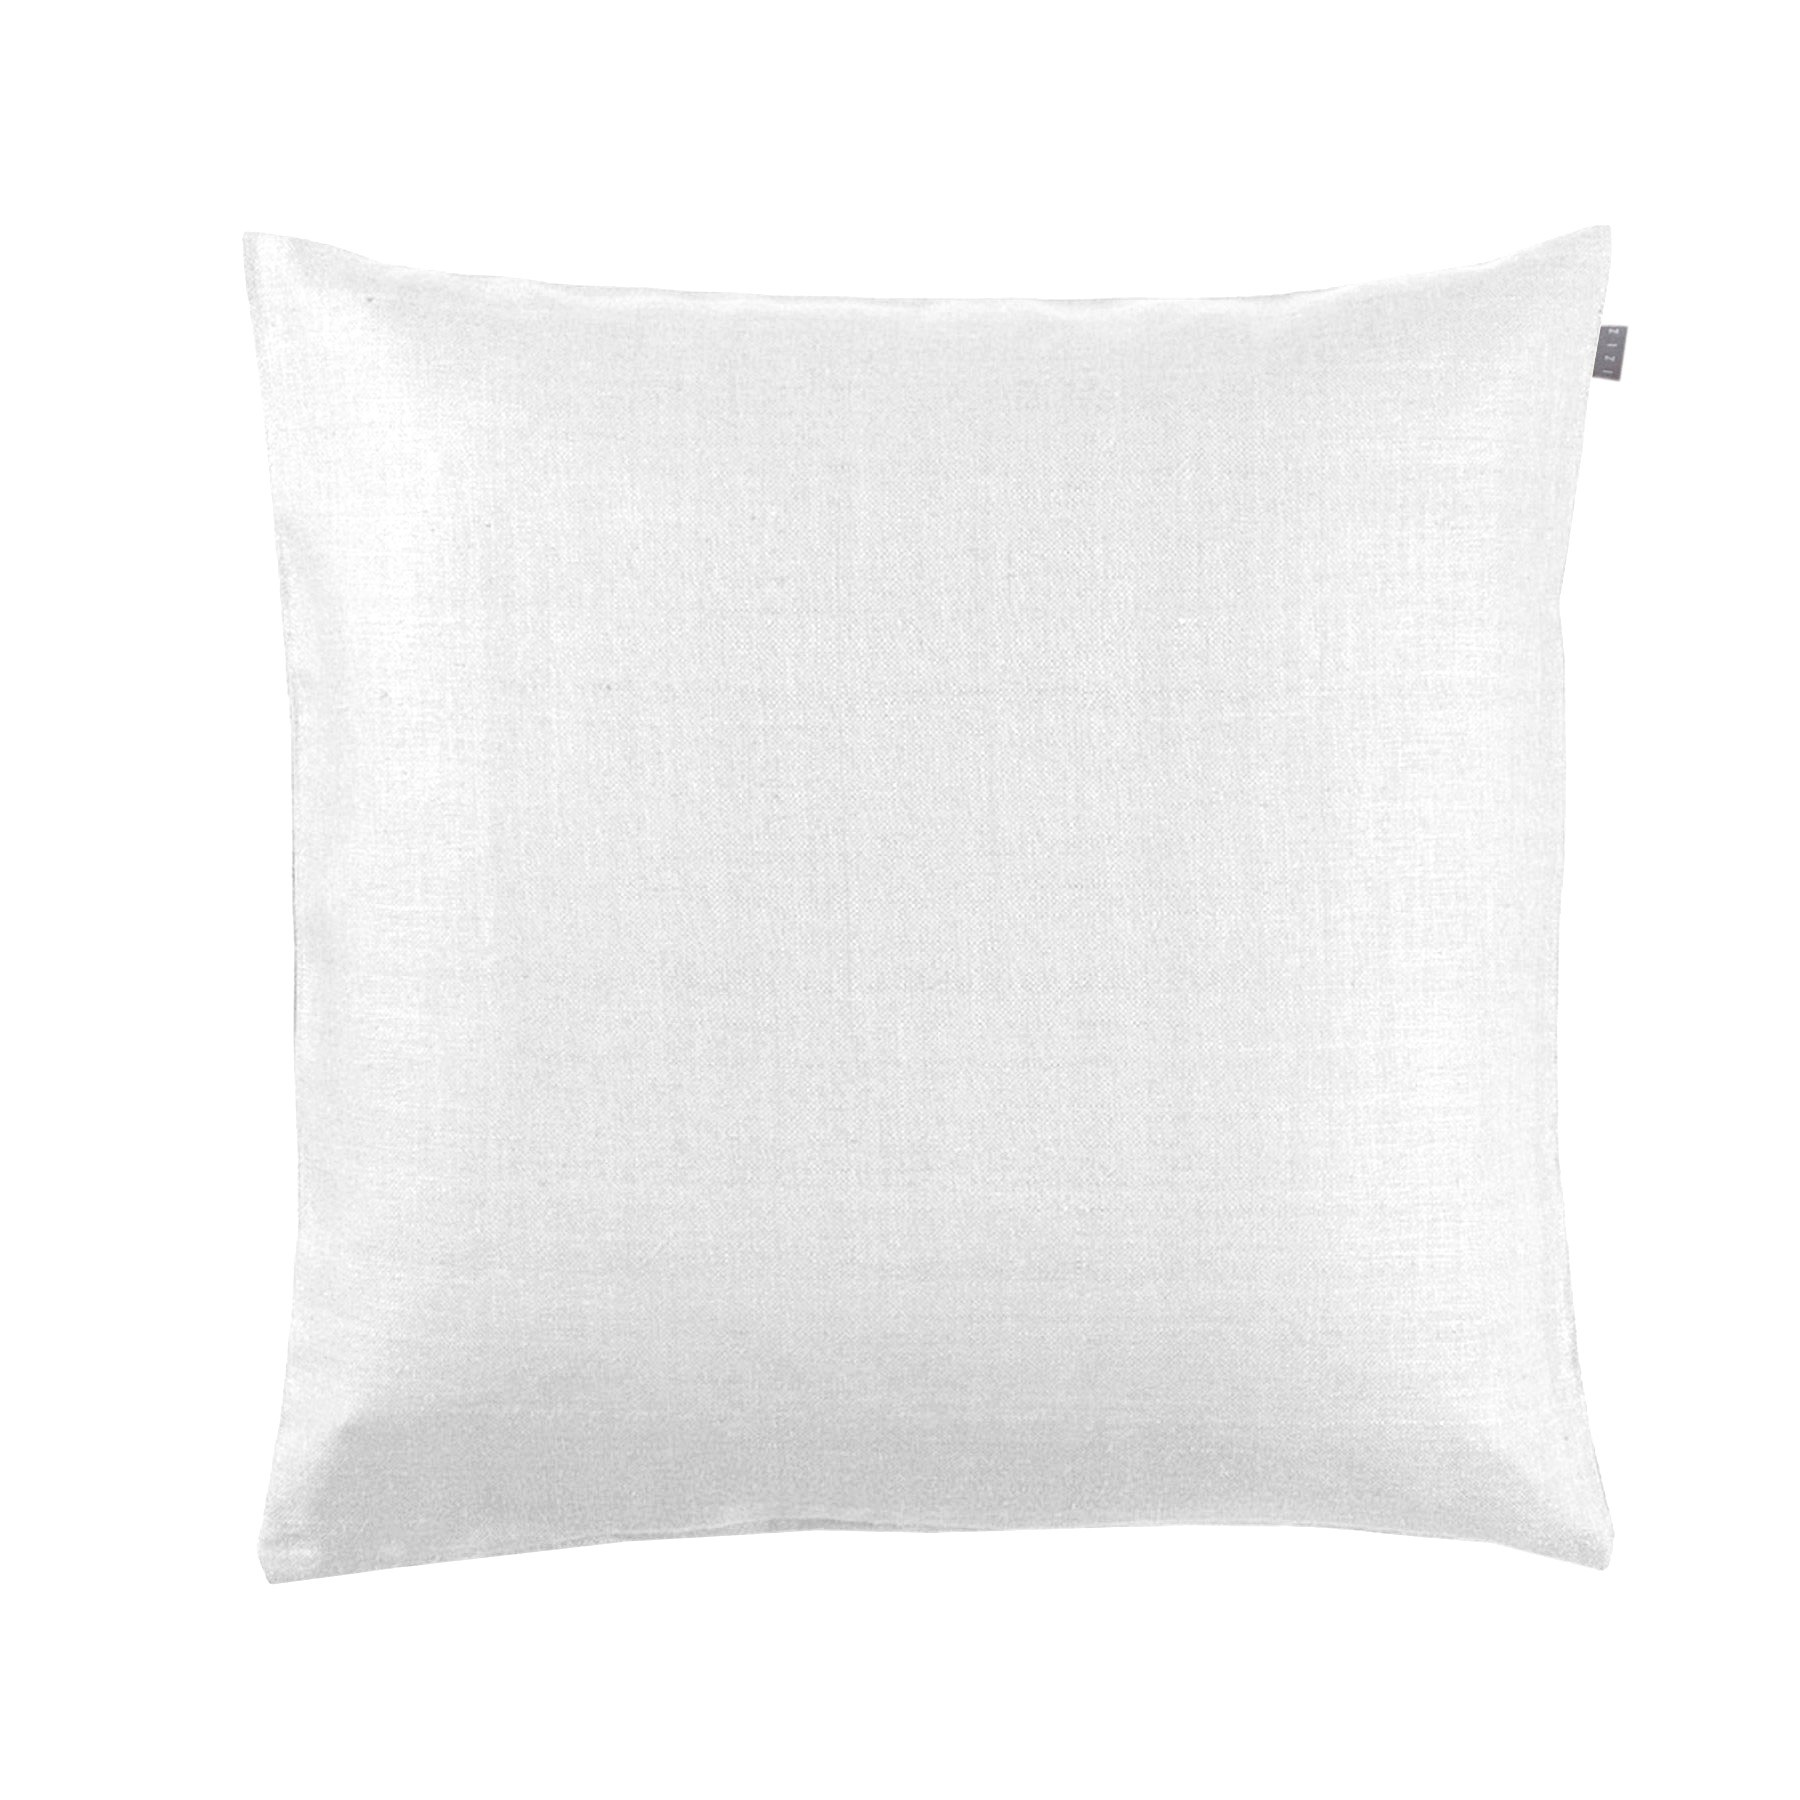 CUSHION COVER PLAIN <br />white